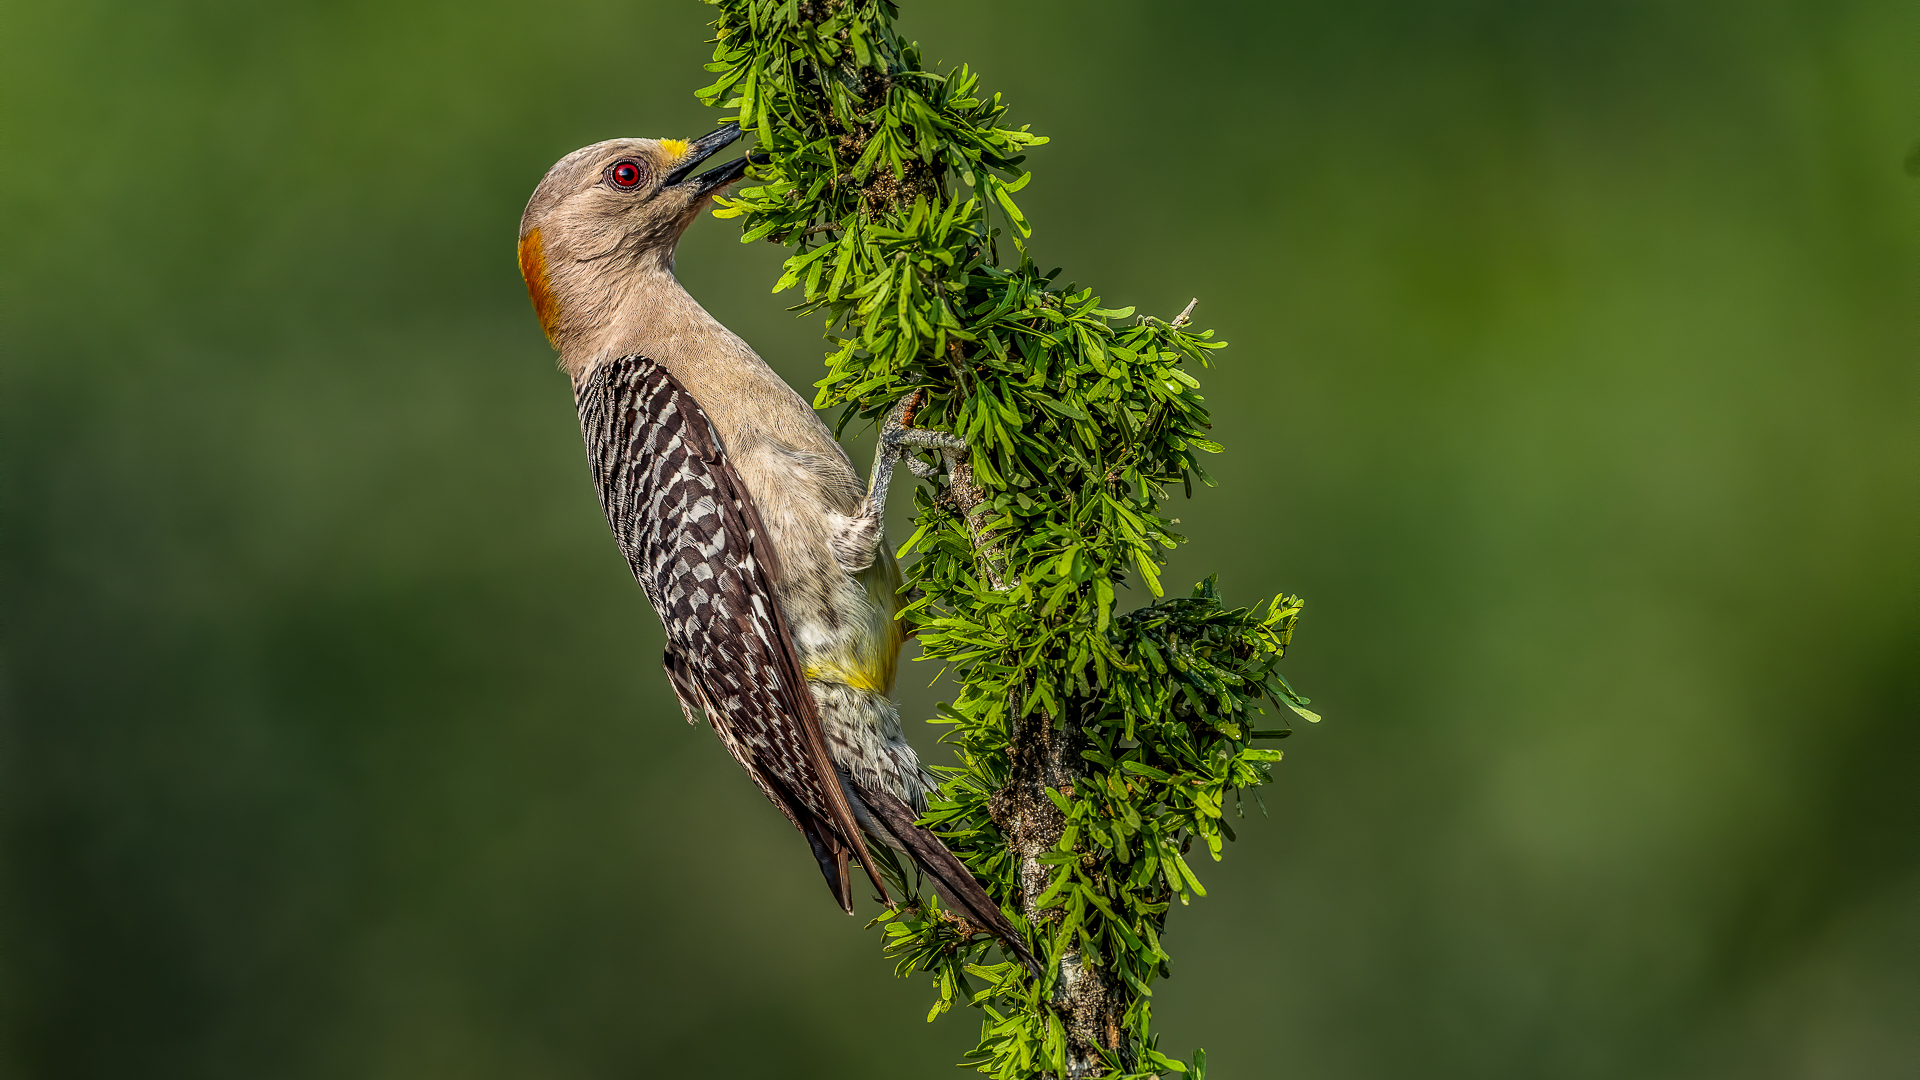 Vincent Filteau – Golden-fronted Woodpecker feed – 1ST